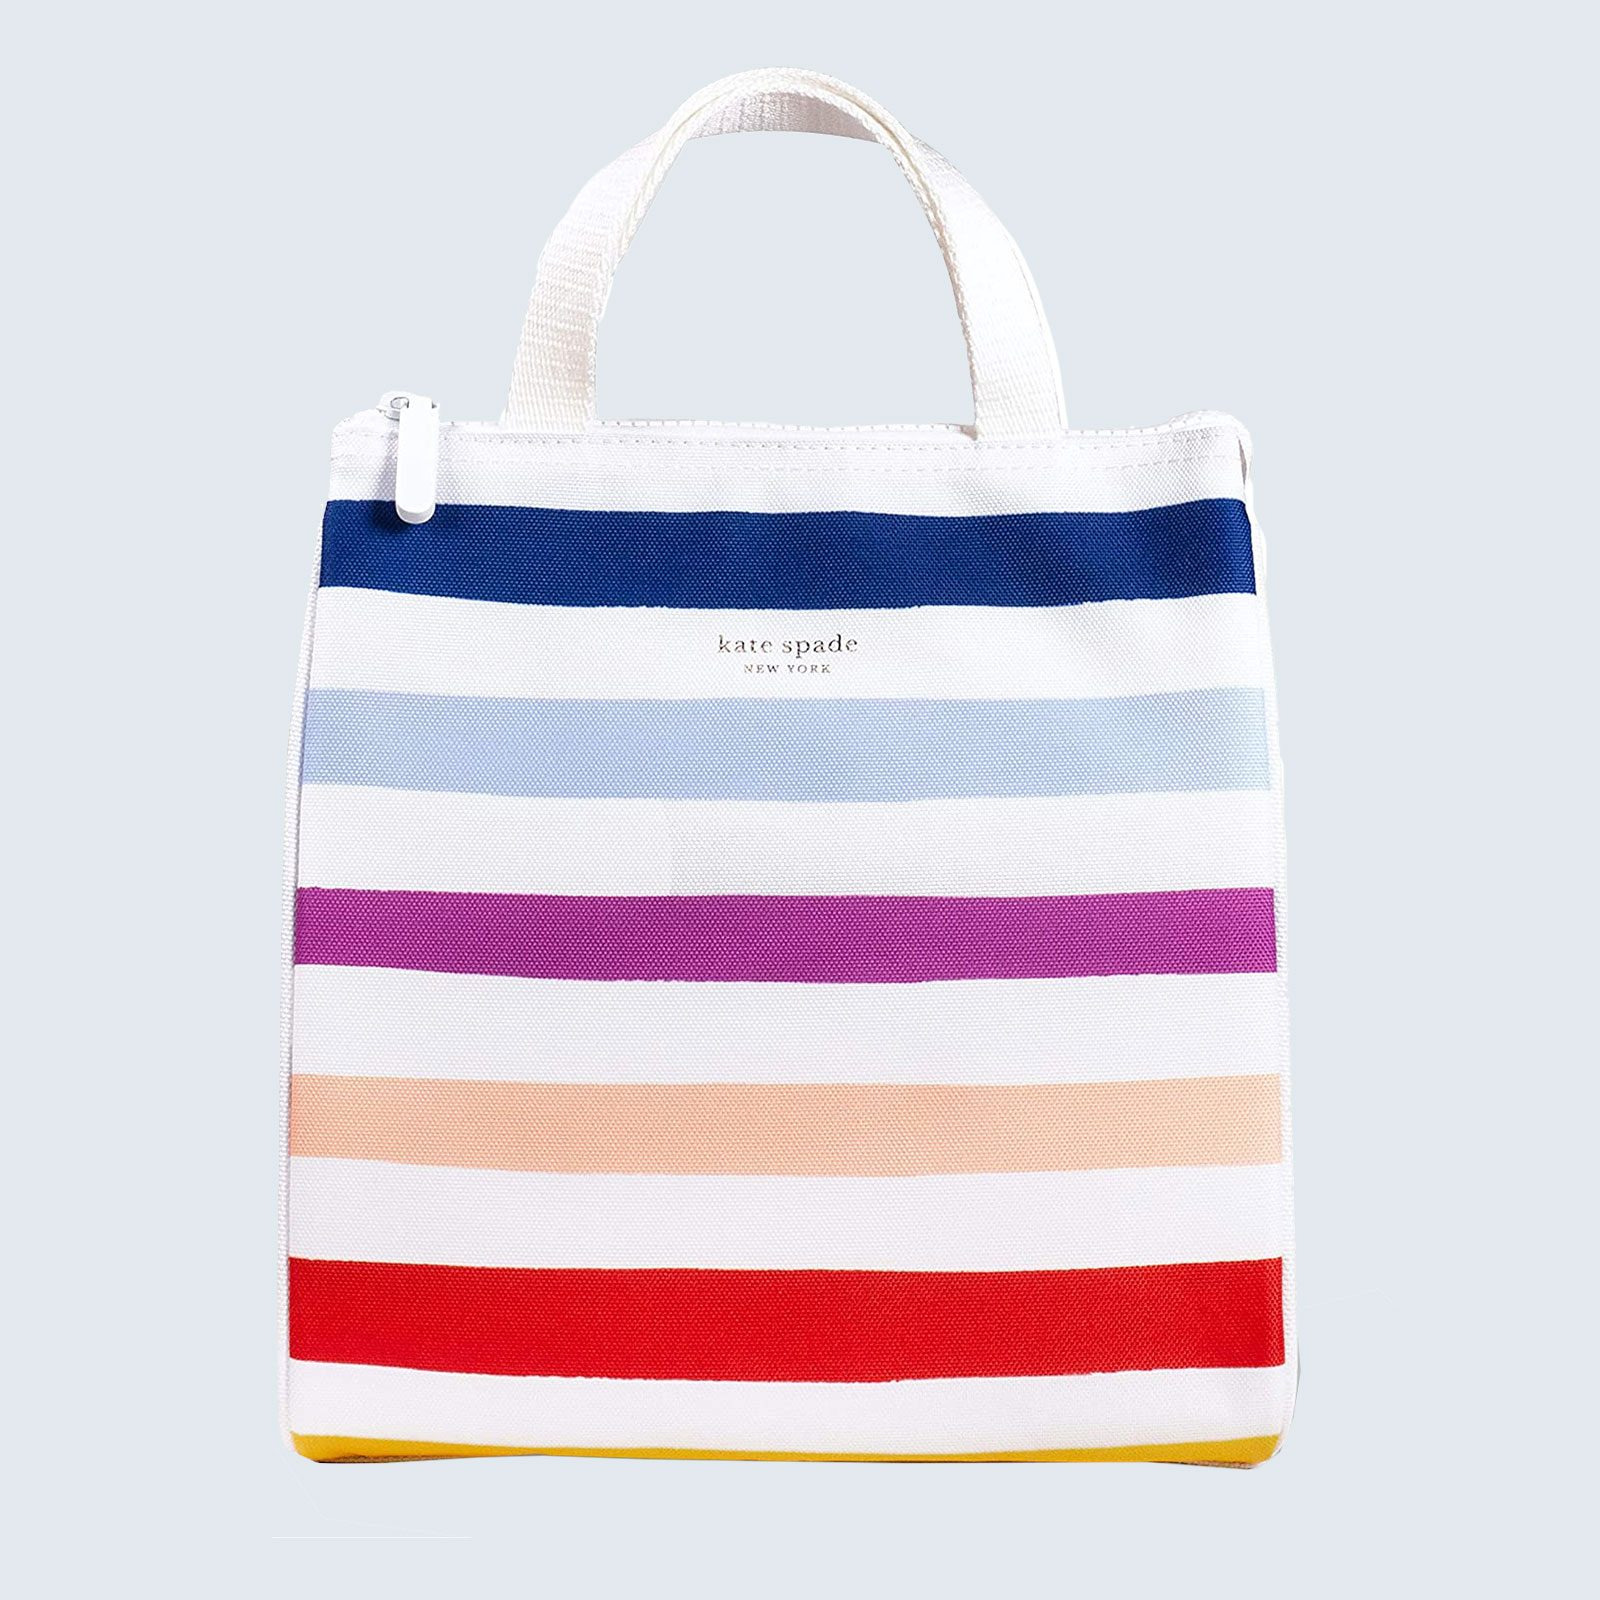 For the working mom: Kate Spade New York Portable Soft Cooler Lunch Bag